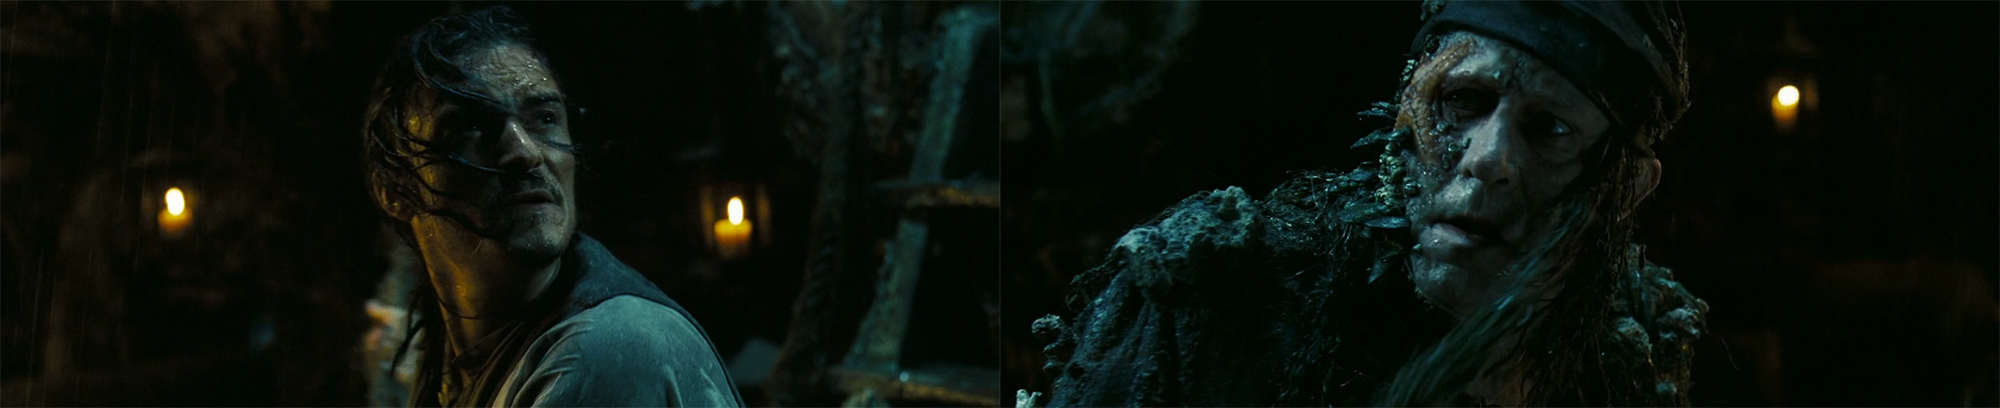 potc 15 - father and son